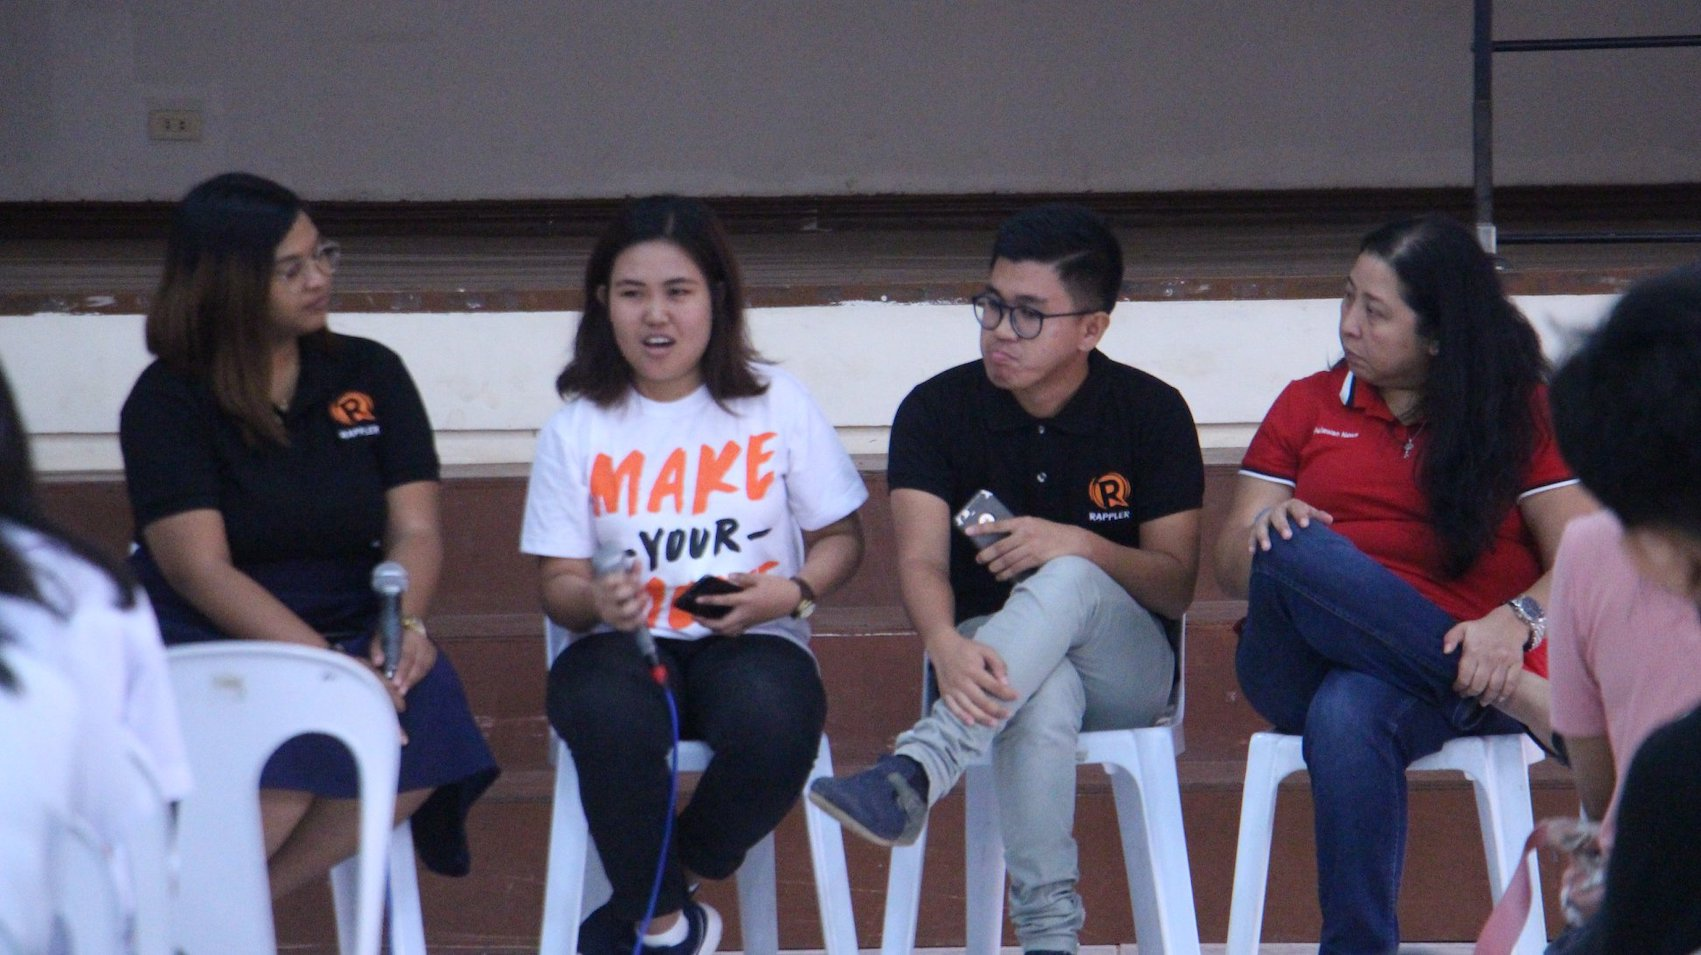 At least 400 campus journalists, student organization leaders, school paper advisers, and other stakeholders joined #MovePalawan: Social Good in the Digital Age forum at Palawan State University on Thursday, July 25, 2019.